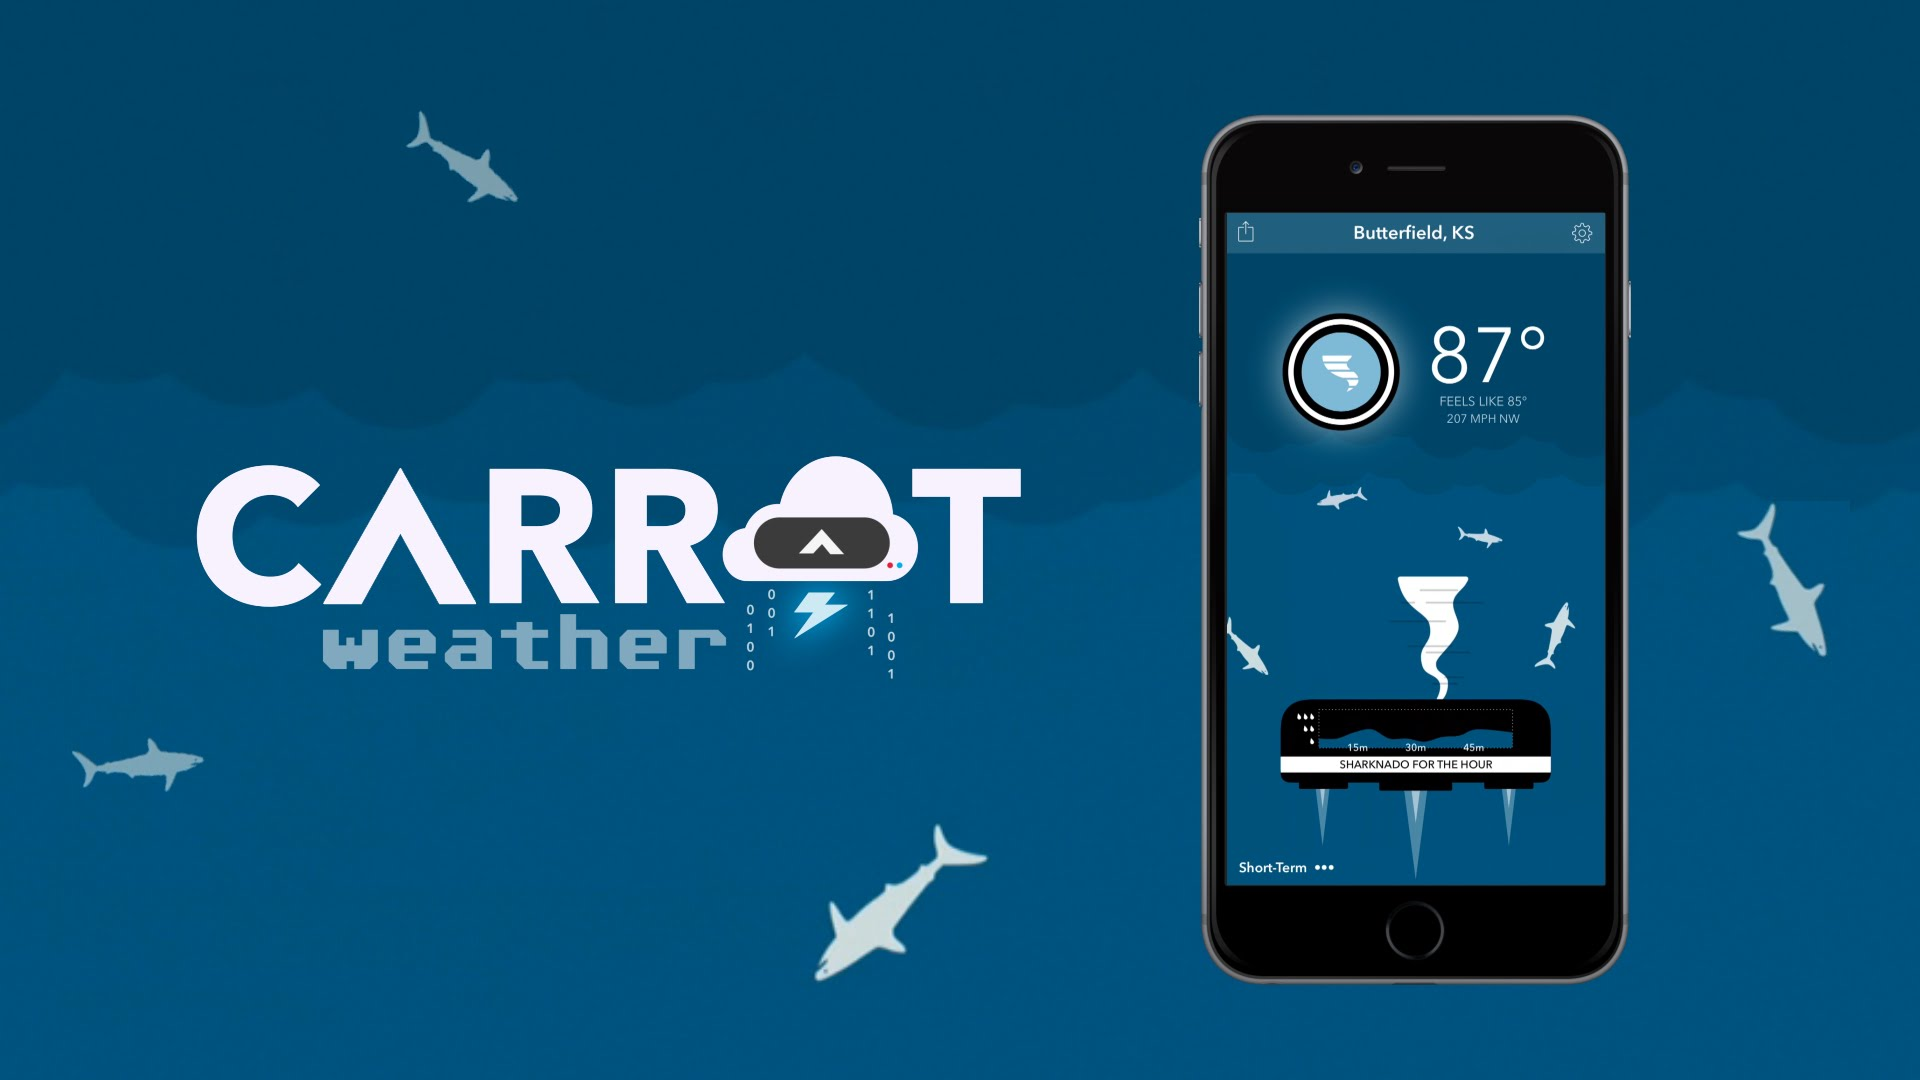 Carrot Weather adds more Apple Watch and iPhone 6s support